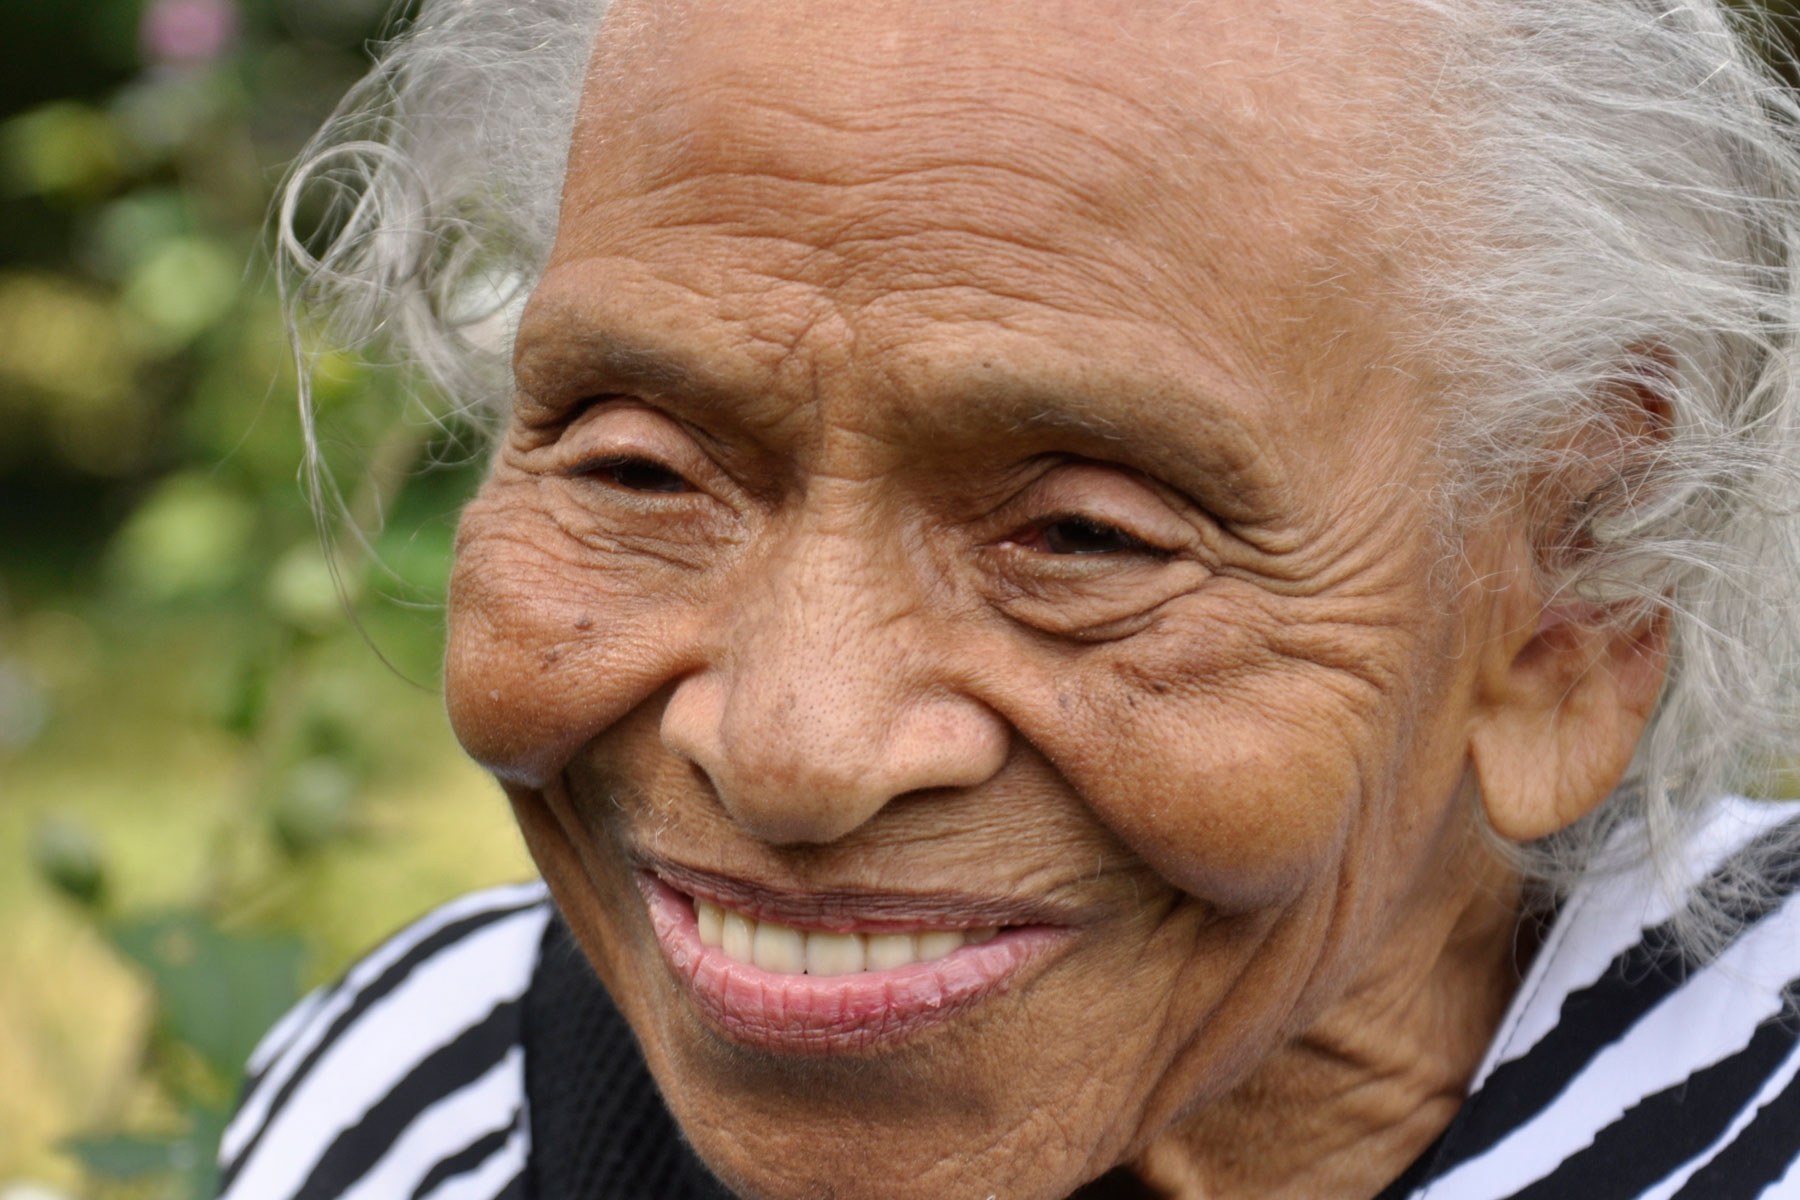 Olivia Hooker, pictured here at 98 years old, was the first African American woman to enter the U.S. Coast Guard. Also the last living survivor of the 1921, Tulsa, Oklahoma Hooker is now 102 years old.